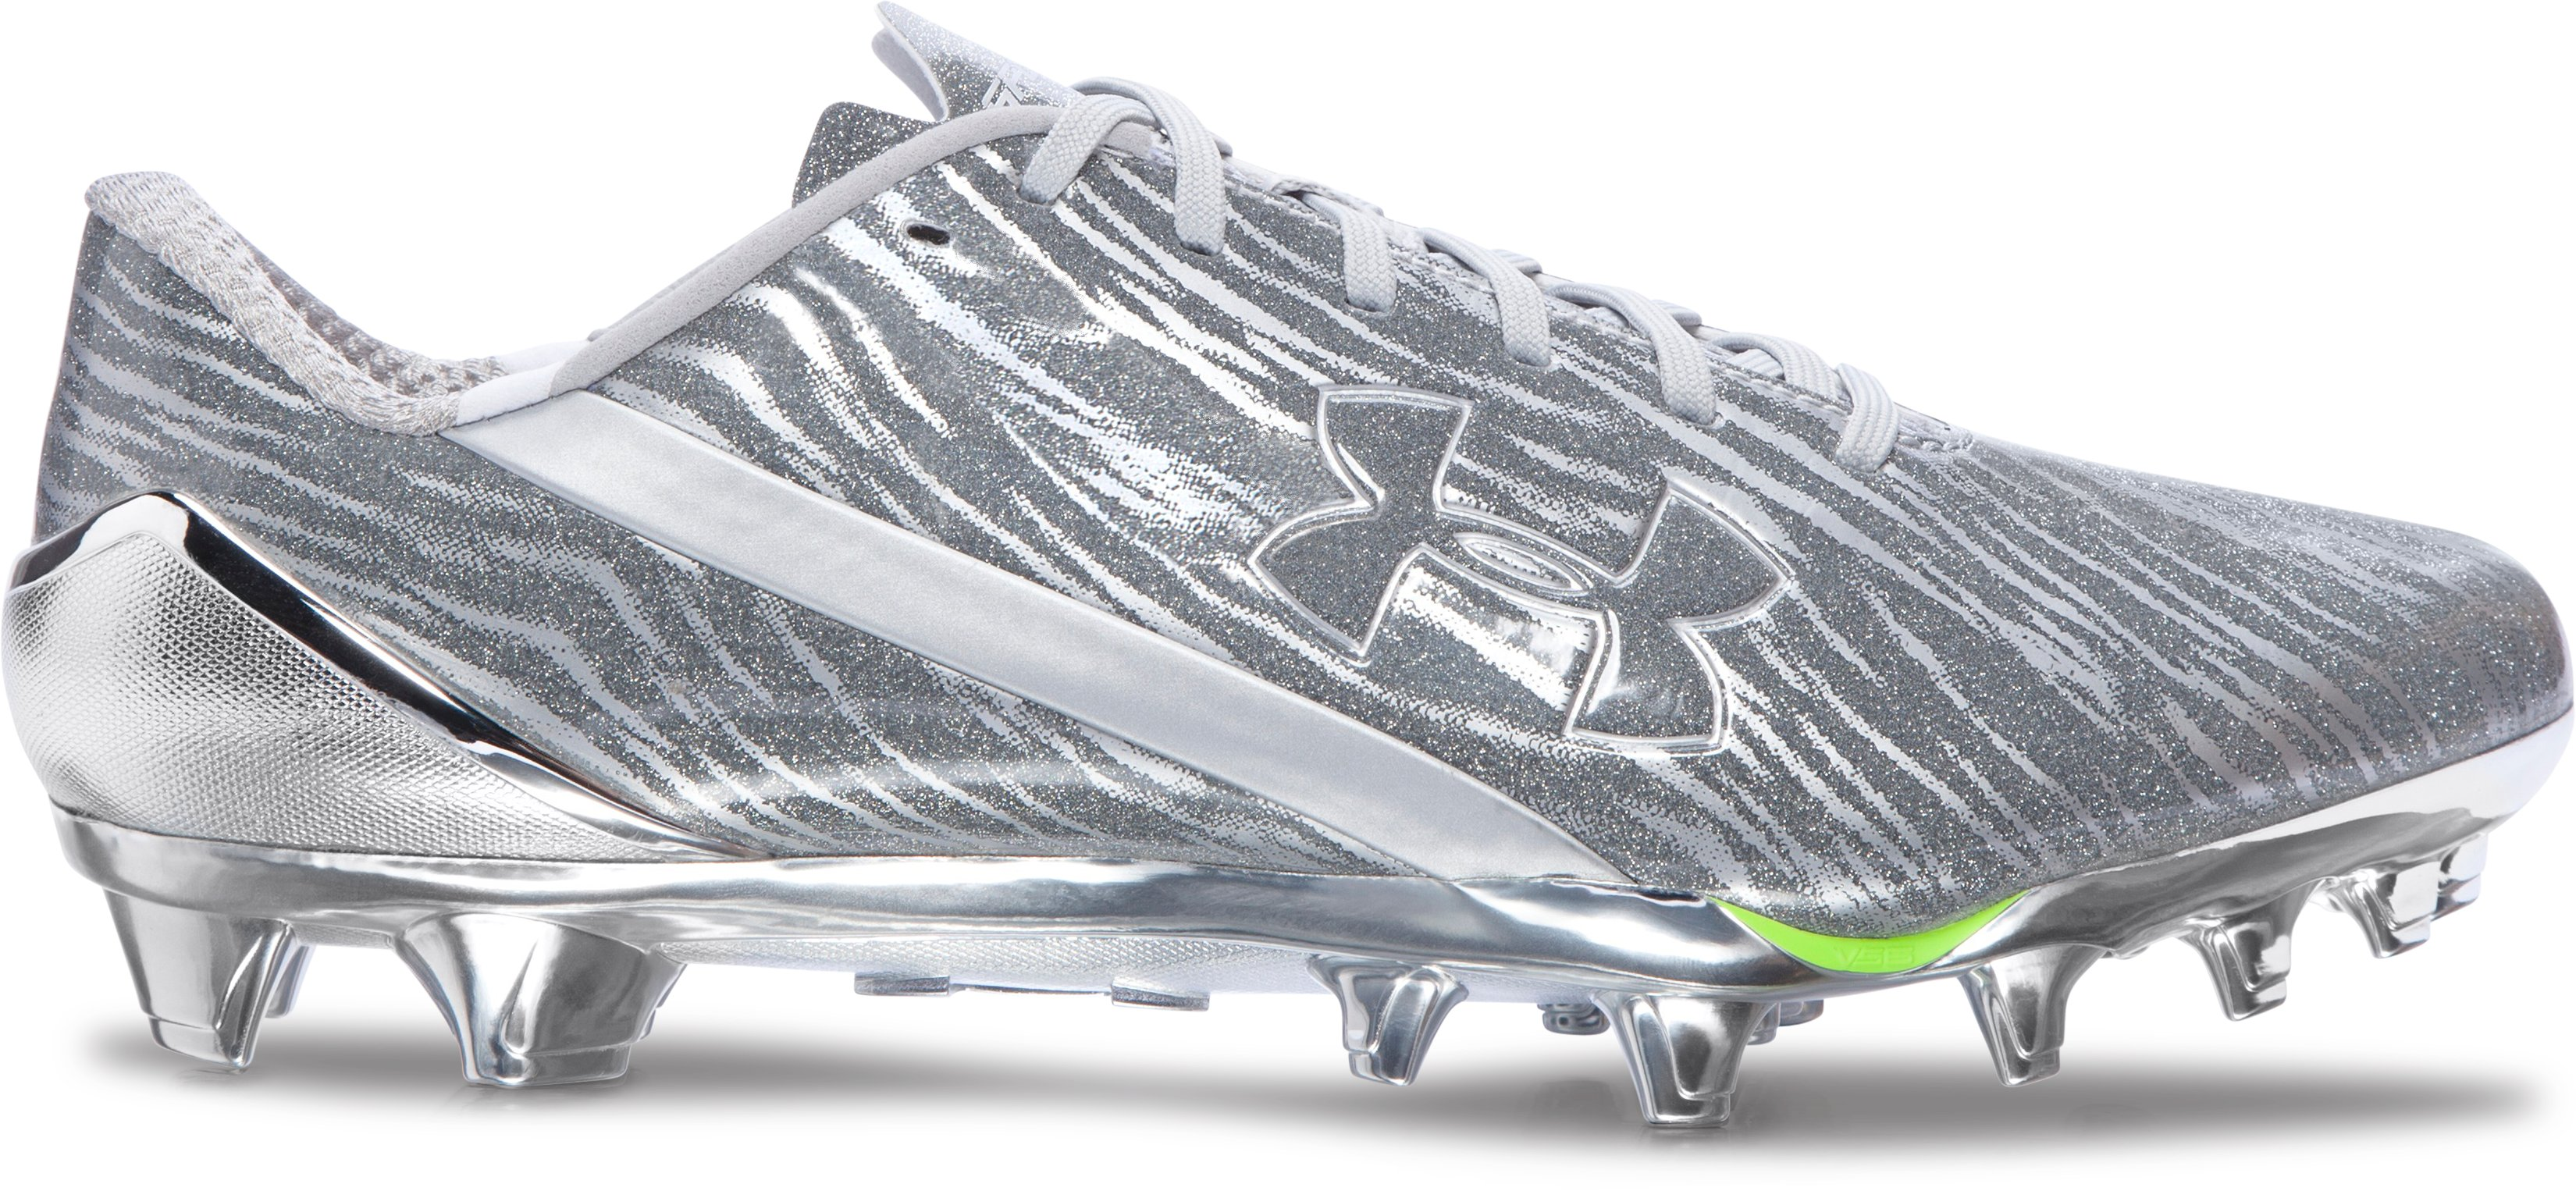 Mens Ua Spotlight in Footbal Shoes Under Armour